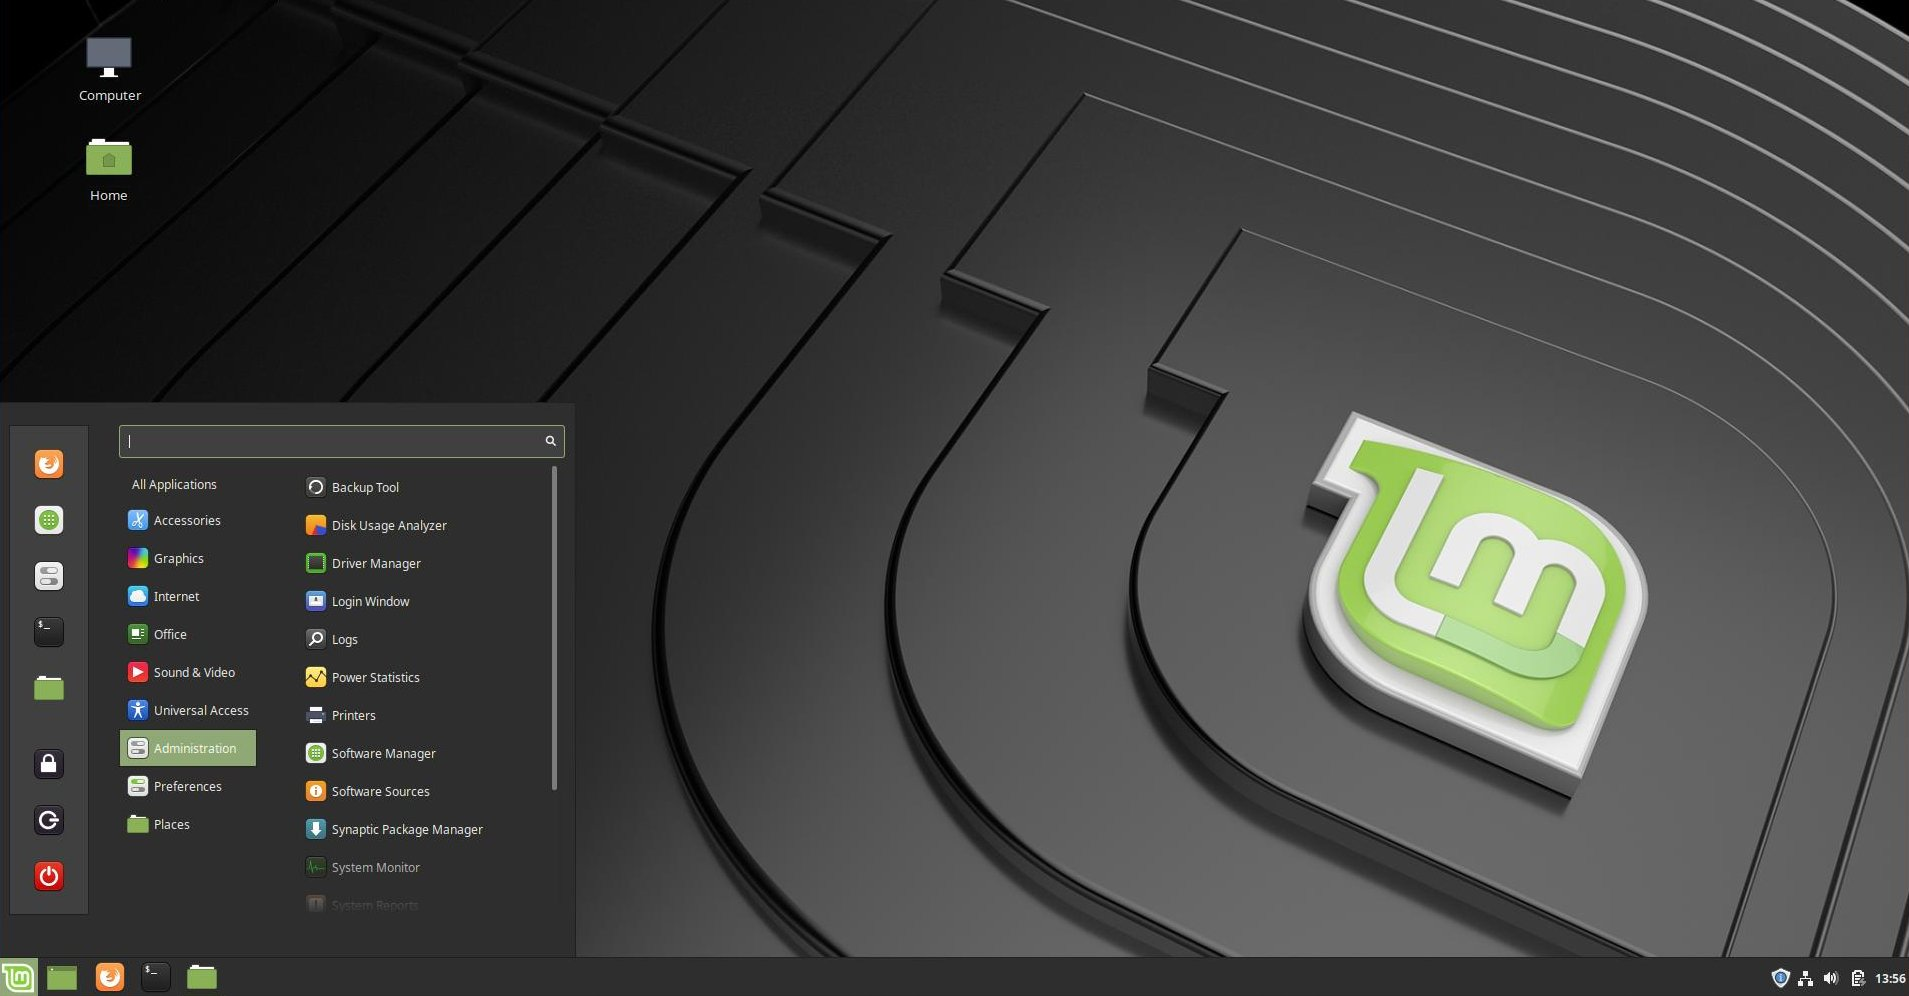 Linux Mint 19 1: A sneaky popular distro skips upheaval